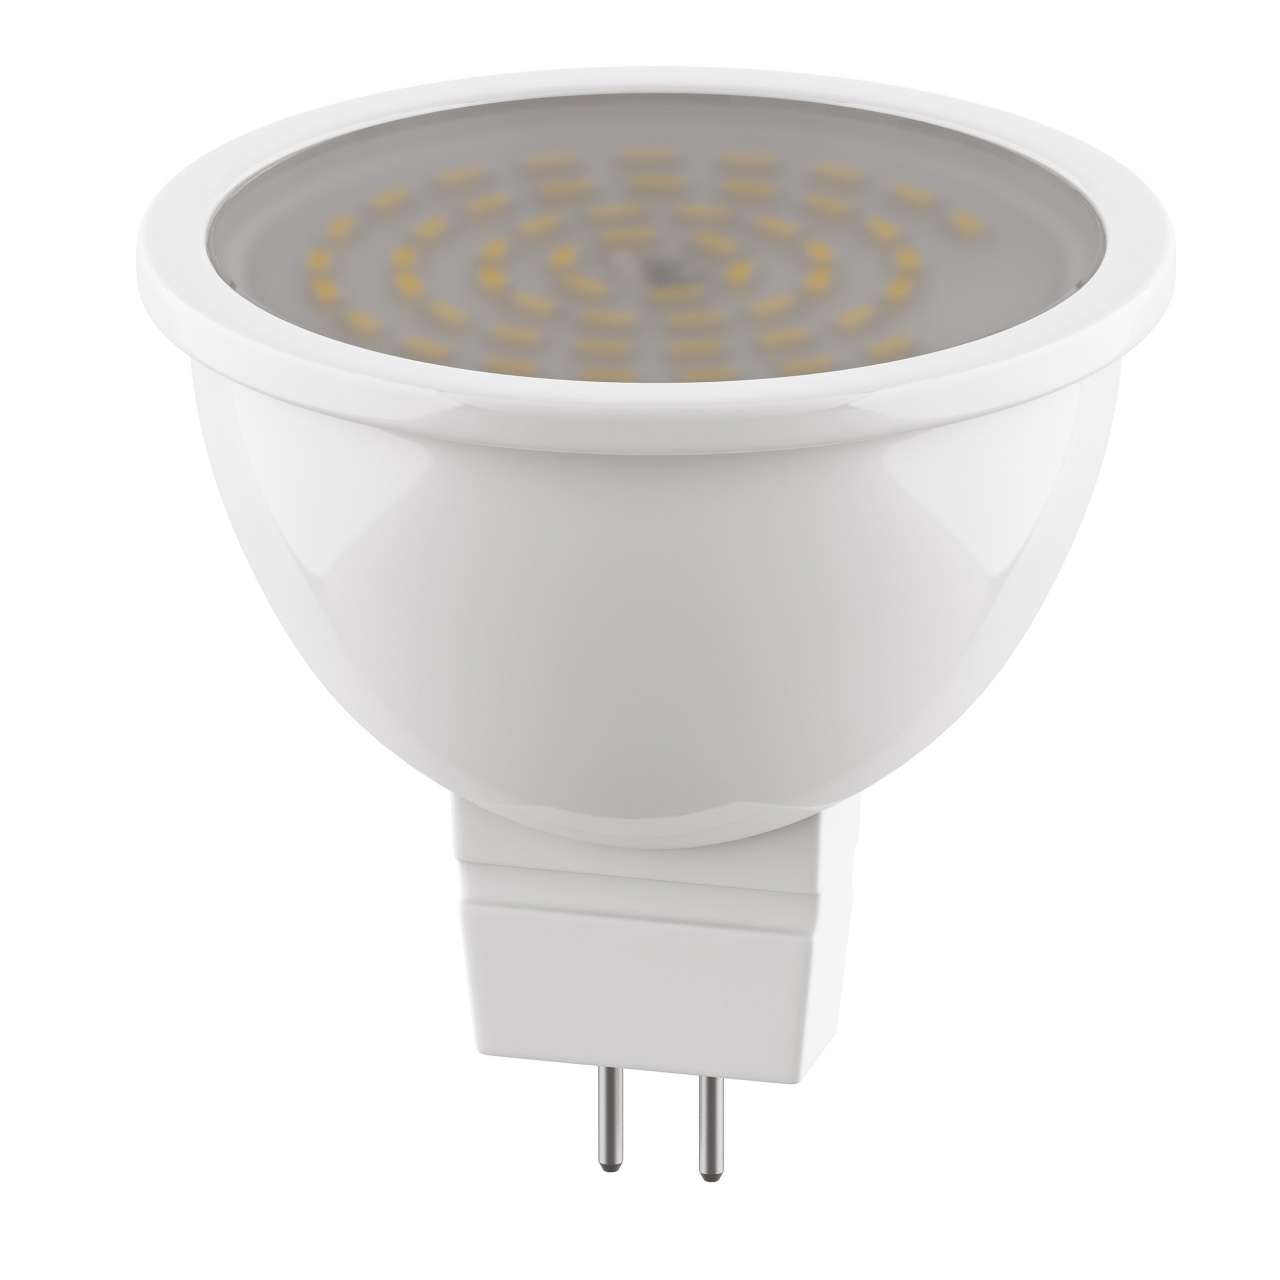 Лампа LED 220V MR16 G5.3 4.5W=40W 195LM 120G FR 3000K 20000H Lightstar 940202